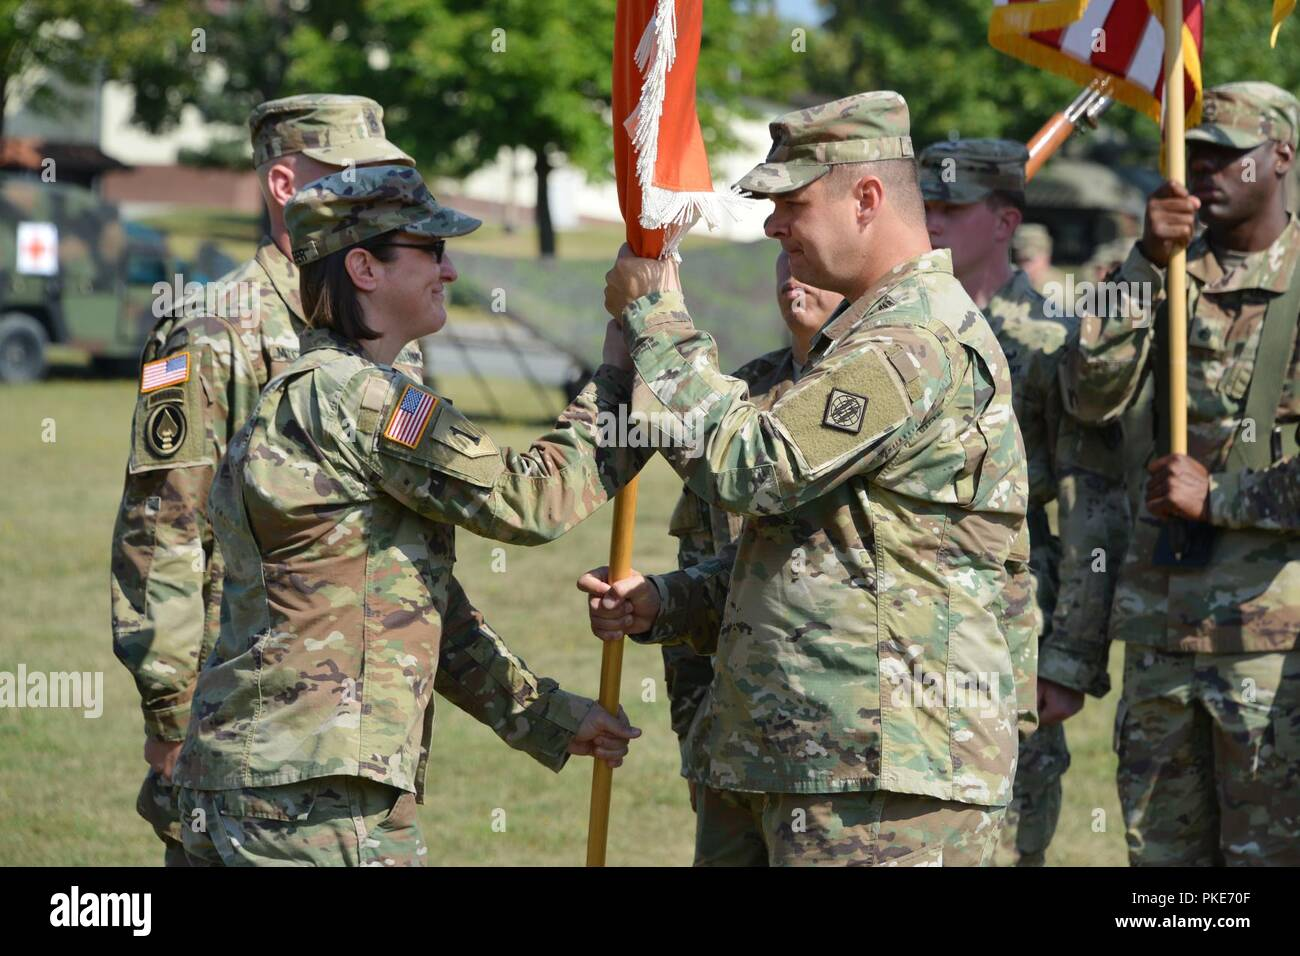 44th Expeditionary Signal Battalion High Resolution Stock Photography And Images Alamy